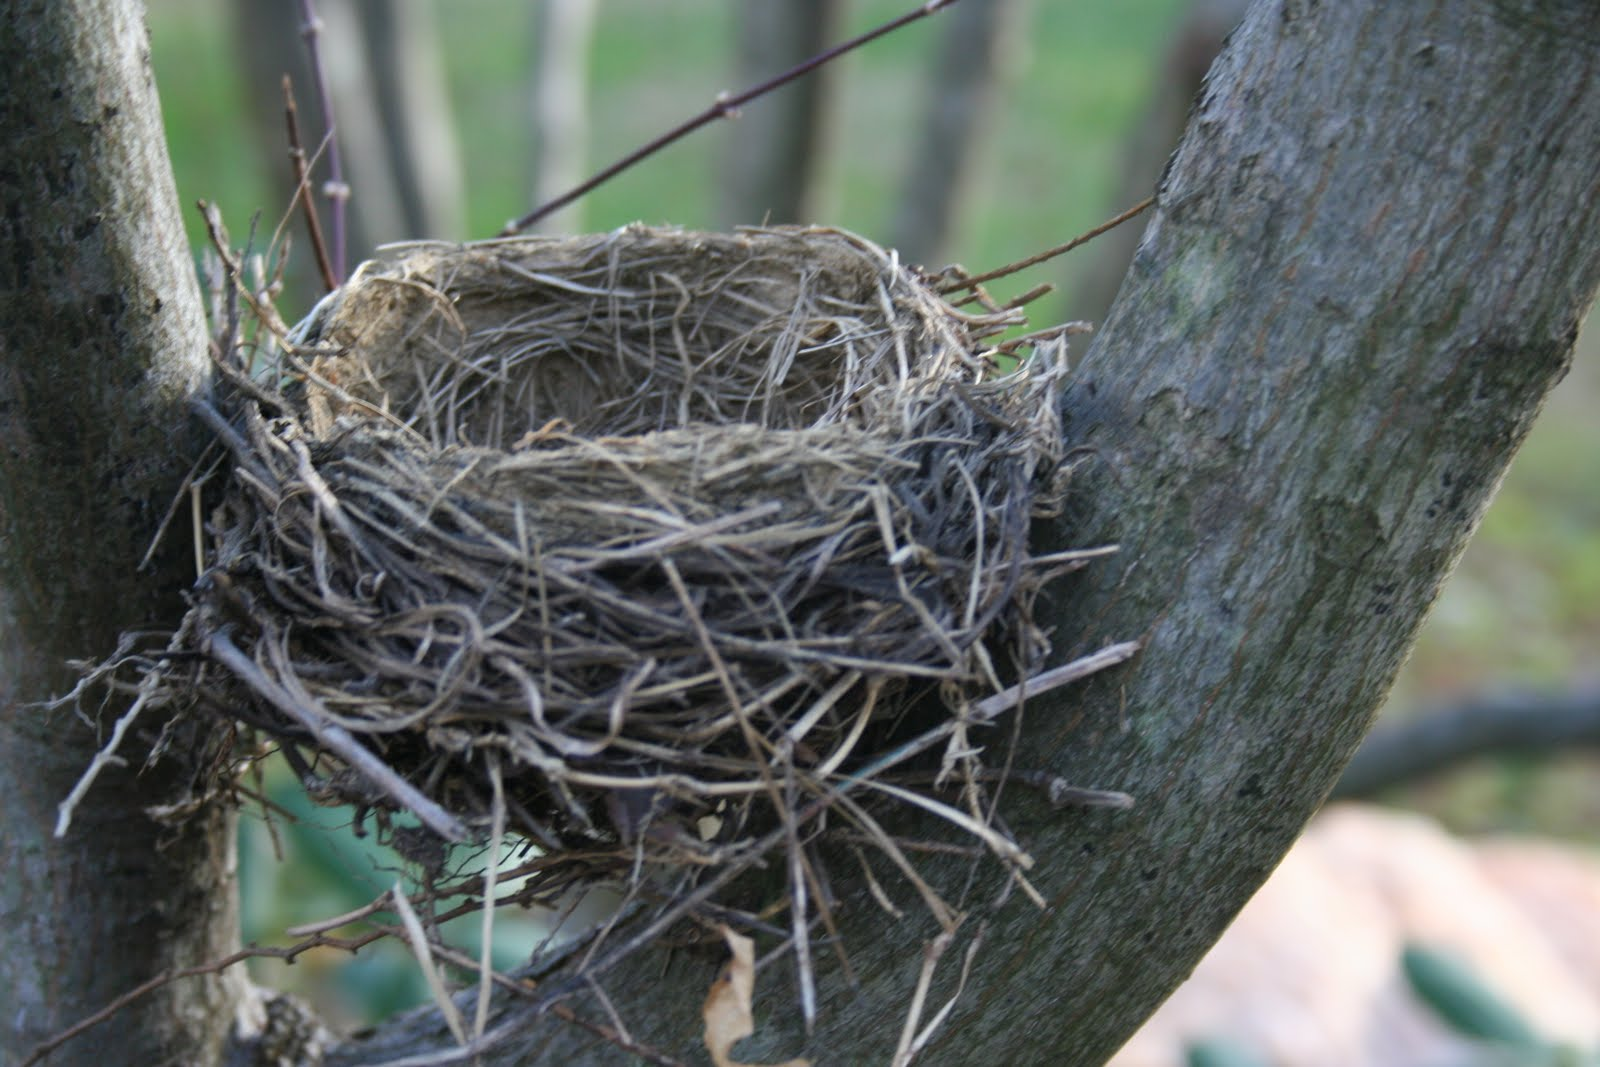 Delco Daily Top Ten: Top 10 The Bird Nest Bird Nest With Bird